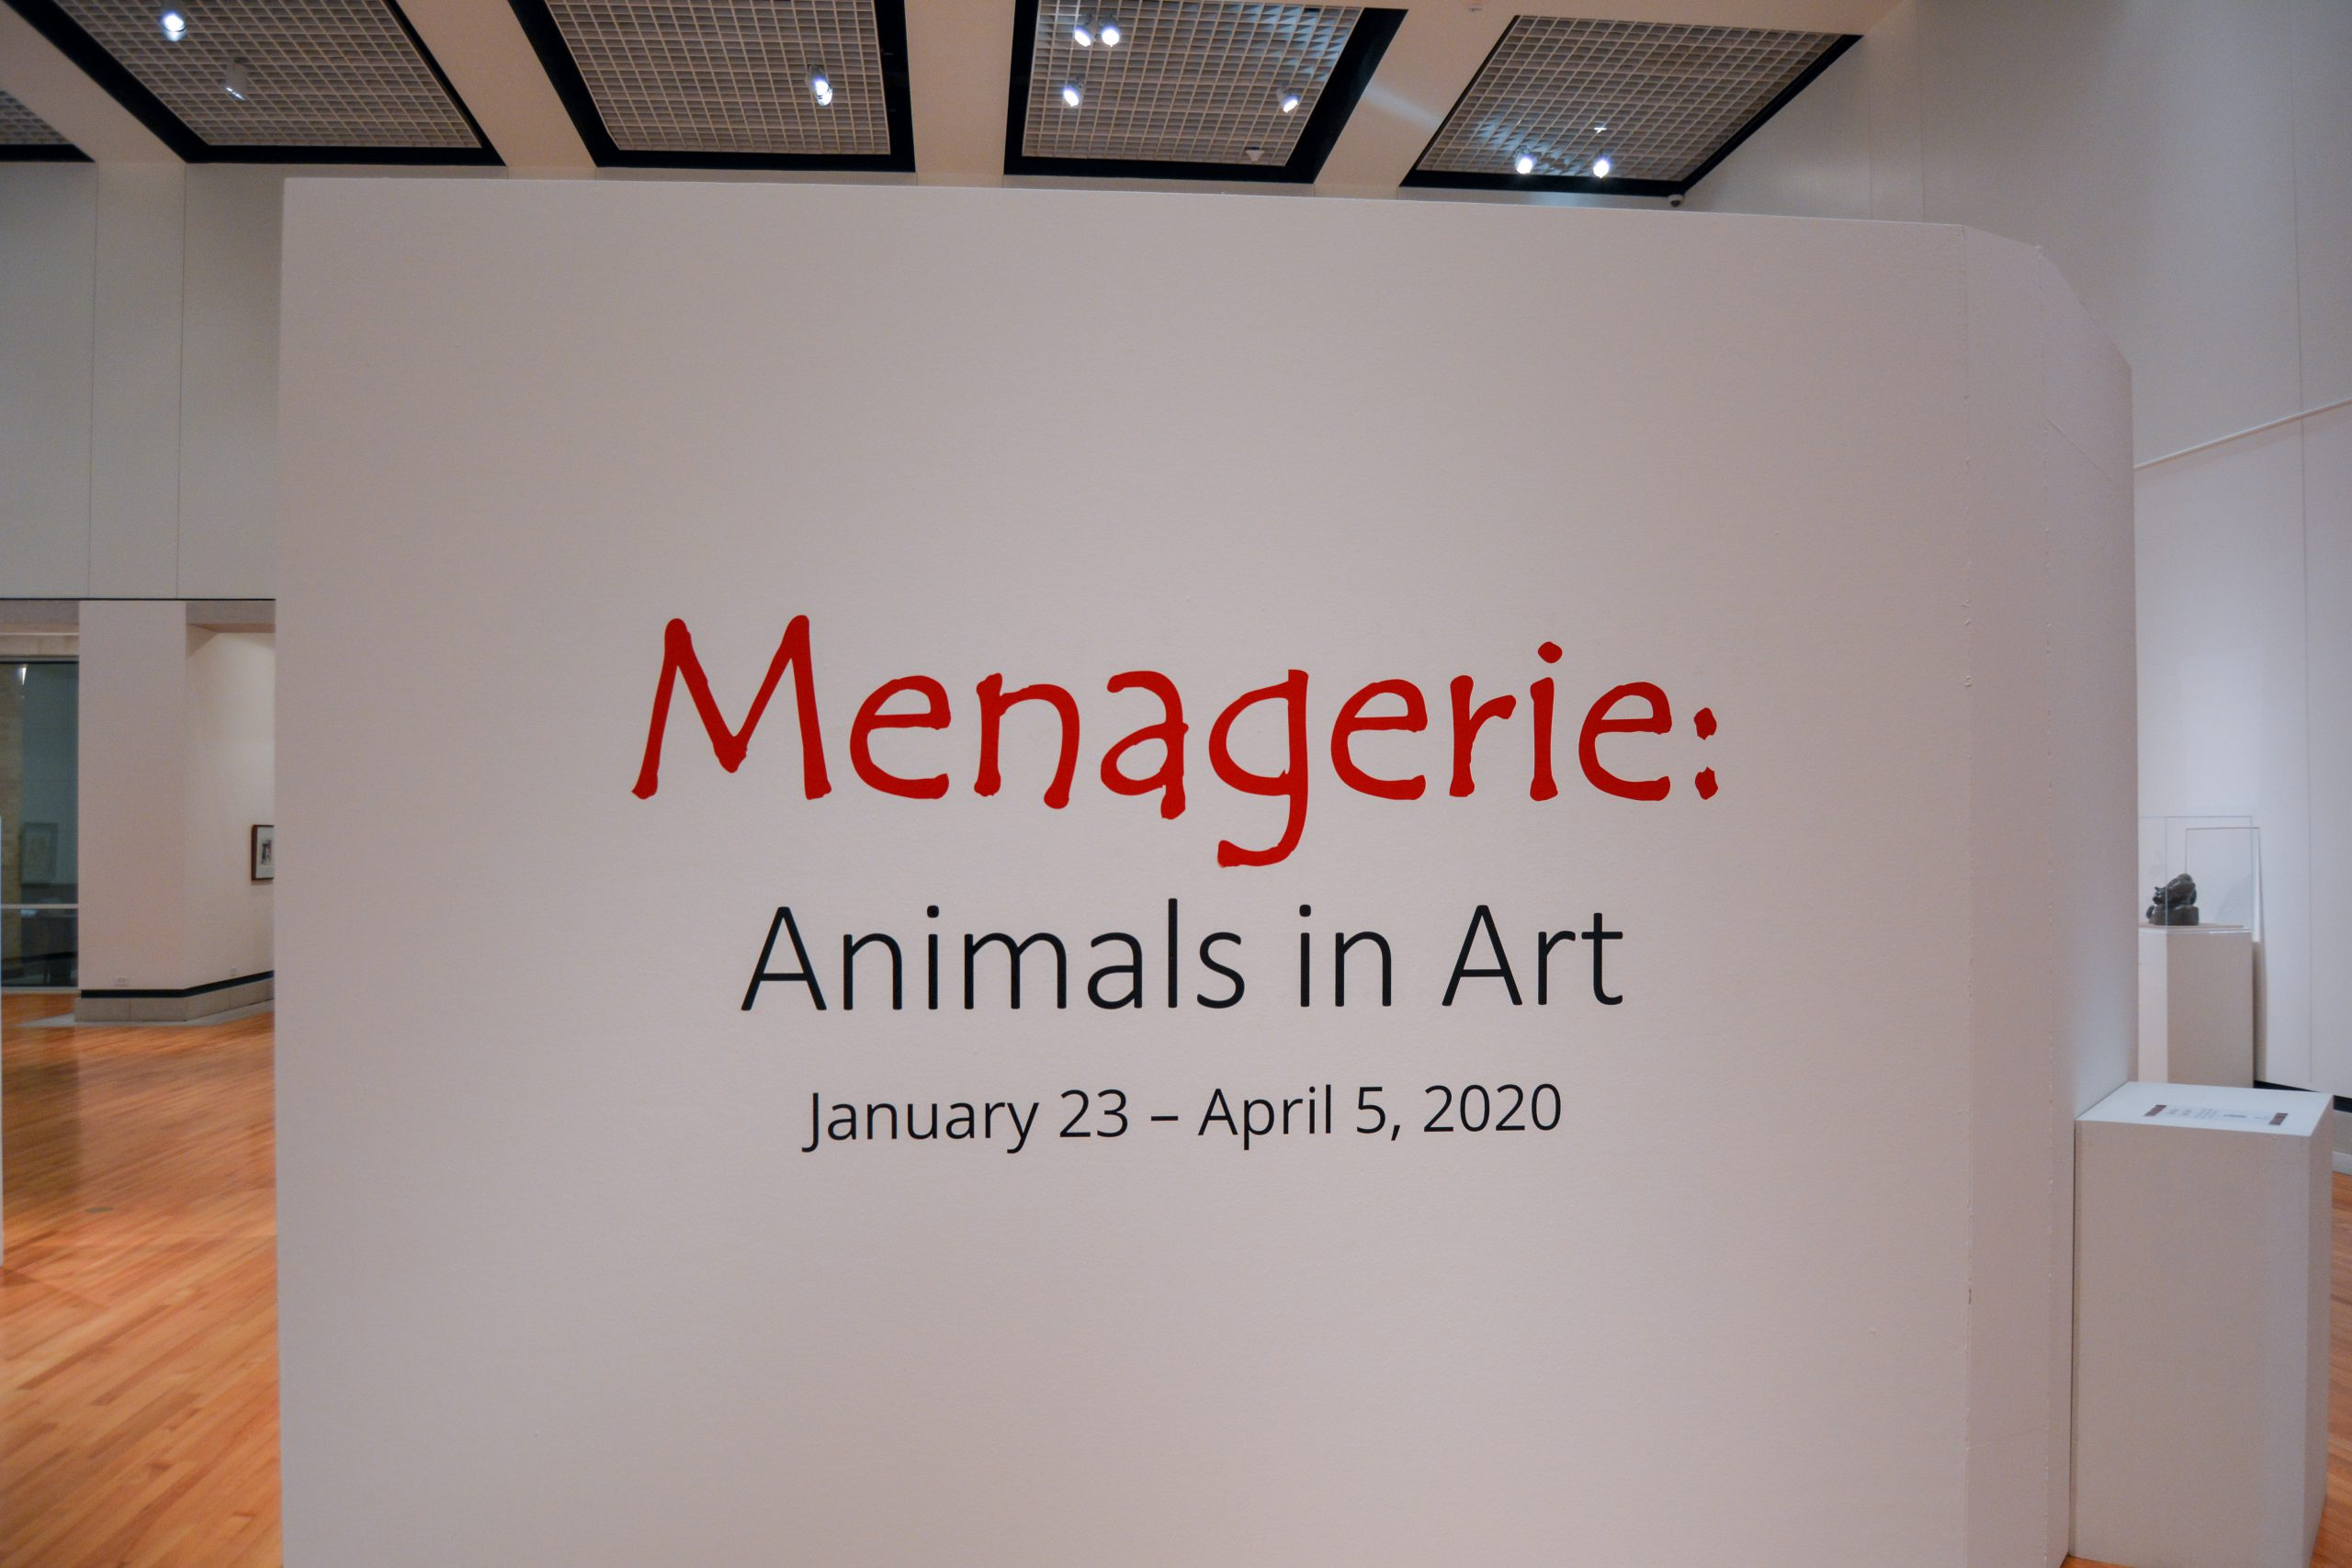 """Title wall in gallery; it reads """"Menagerie: Animals in Art"""" January 23-April 5, 2020"""